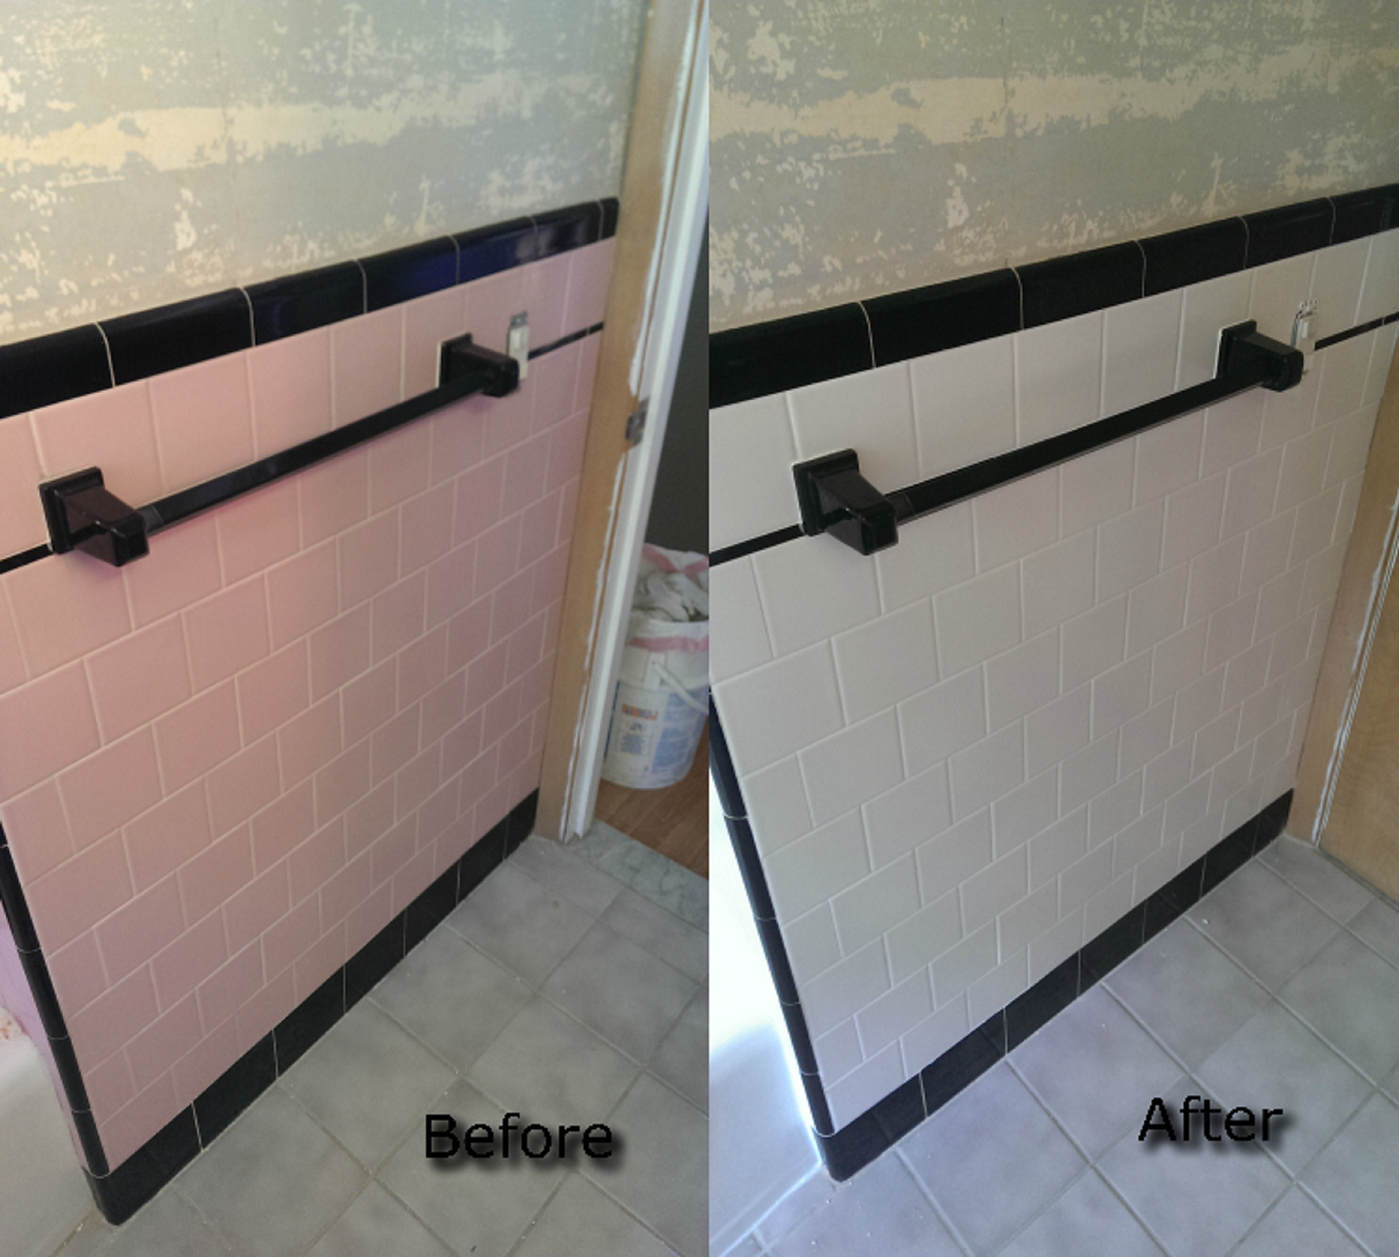 Remodel Without Removing Your Existing Tile Or Install These